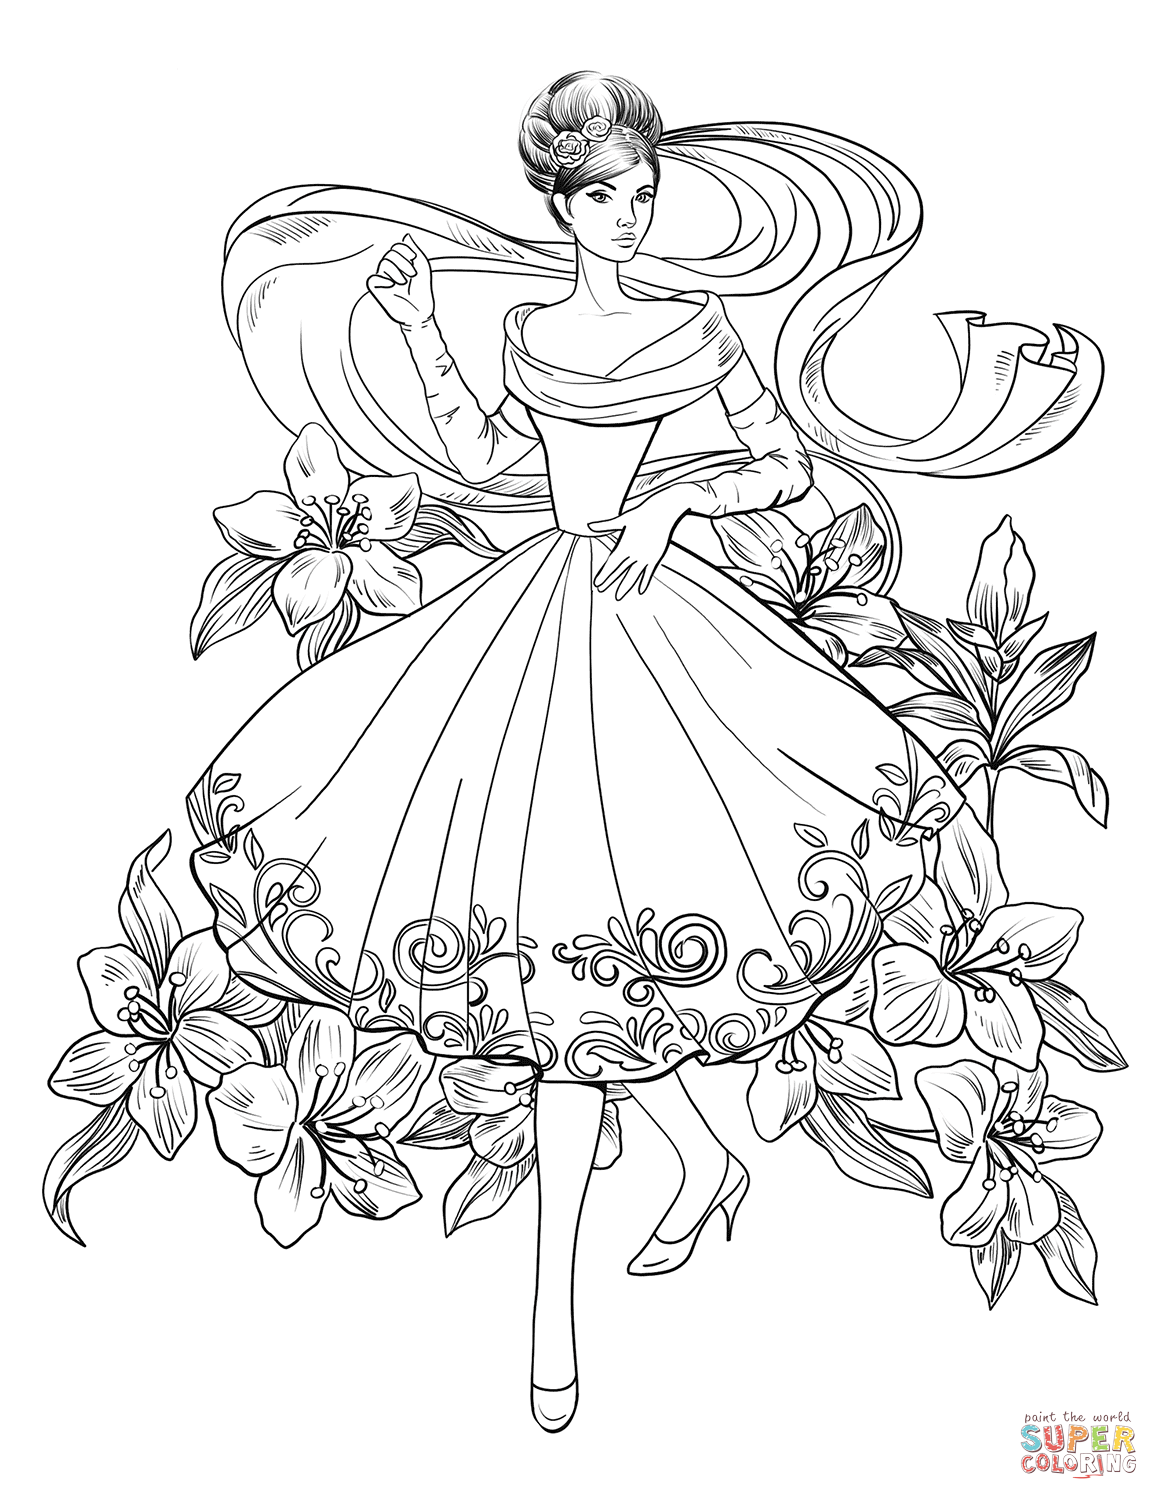 Lady From 60 S Super Coloring Fashion Coloring Book Detailed Coloring Pages Coloring Pages